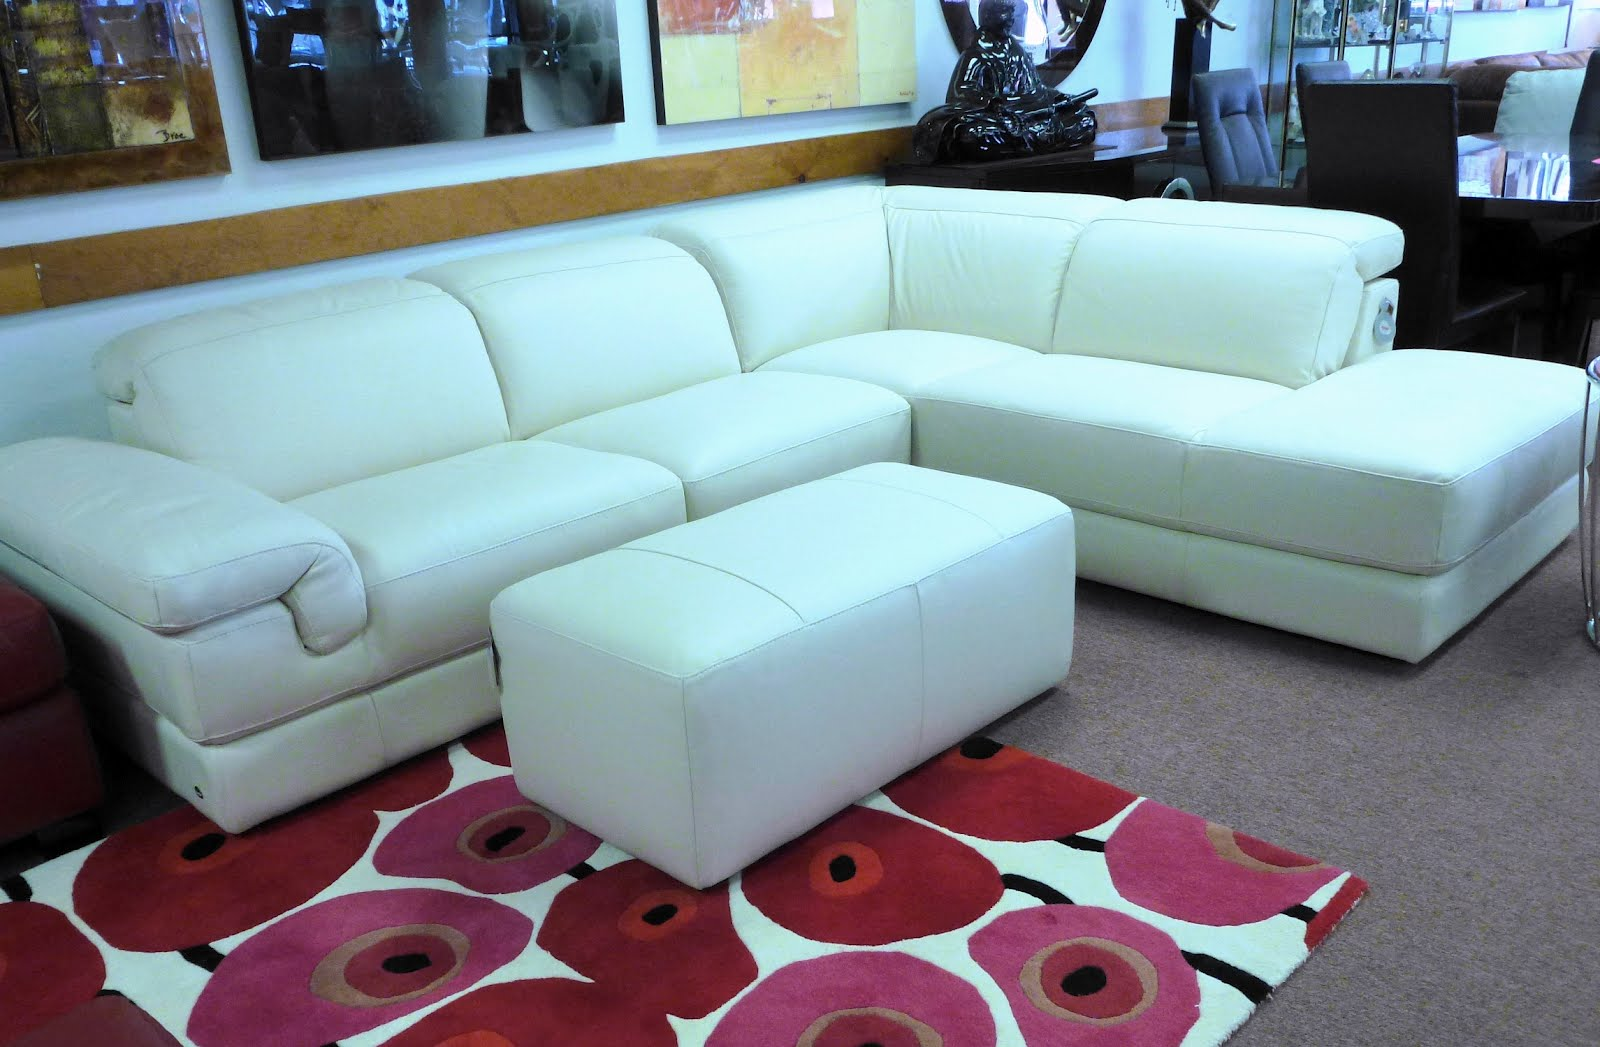 Best Sectional Sofa Brands Fresh Pictures Of Labor Day Furniture Sales 100 Recliner Sofa For